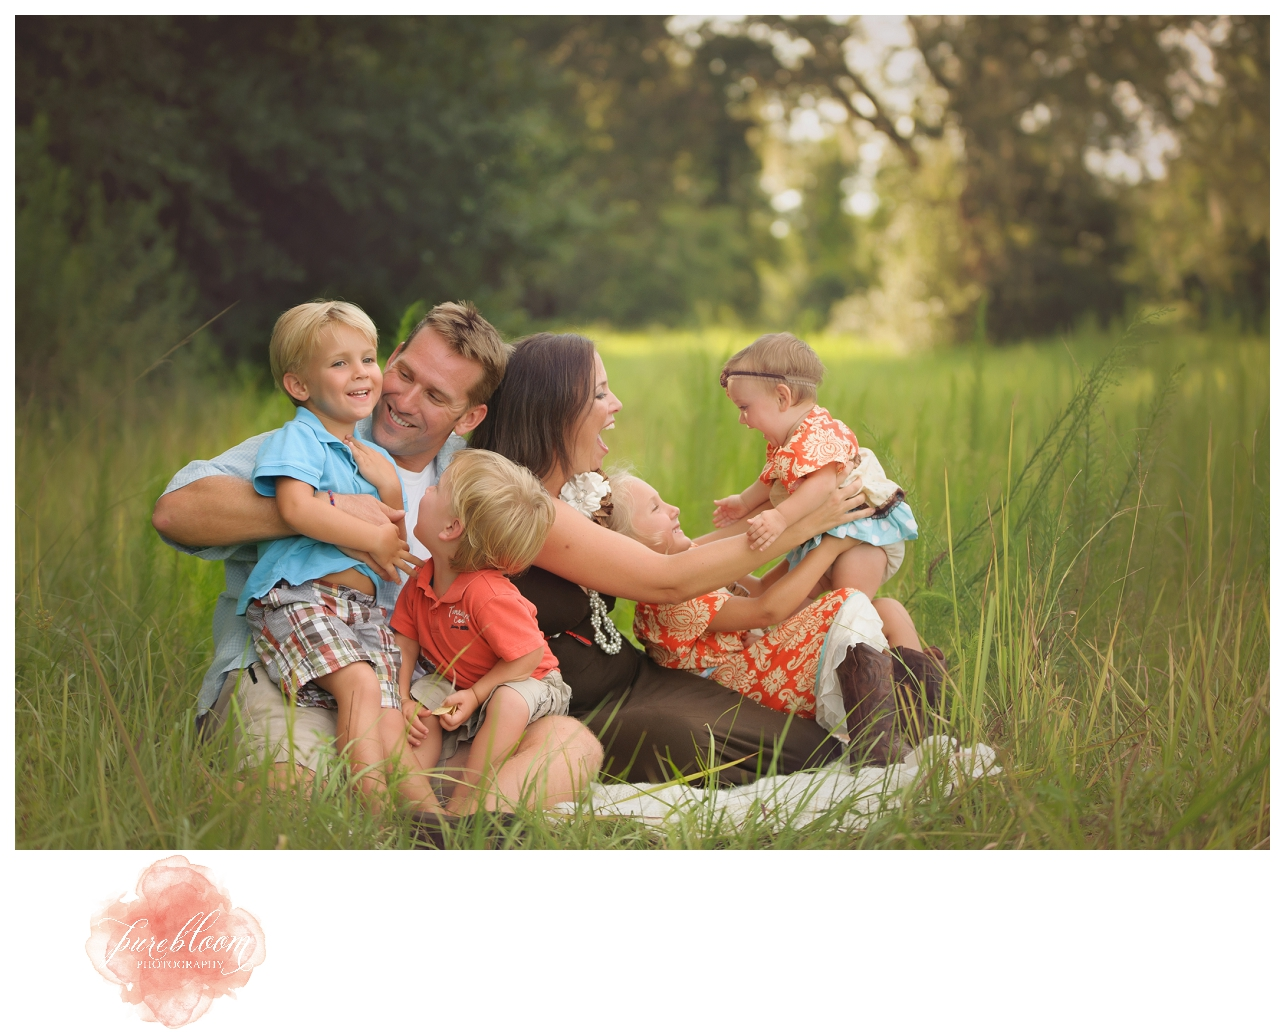 The Margelofsky Family | Tampa Family Photographer | Pure Bloom Photography